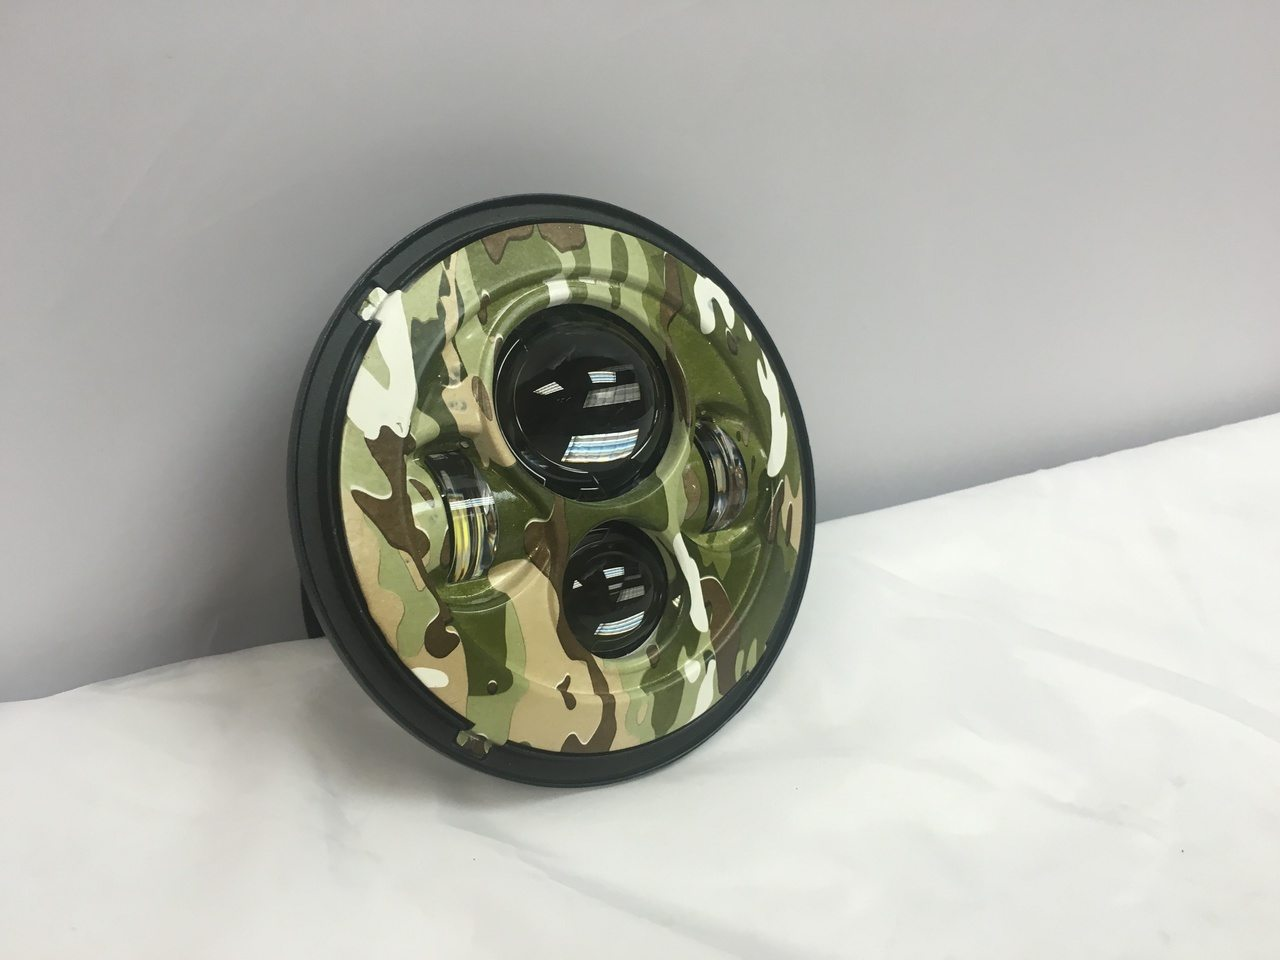 Led Light Bulbs For Harley Davidson Motorcycles : Quot daymaker replacement camo design projector hid led